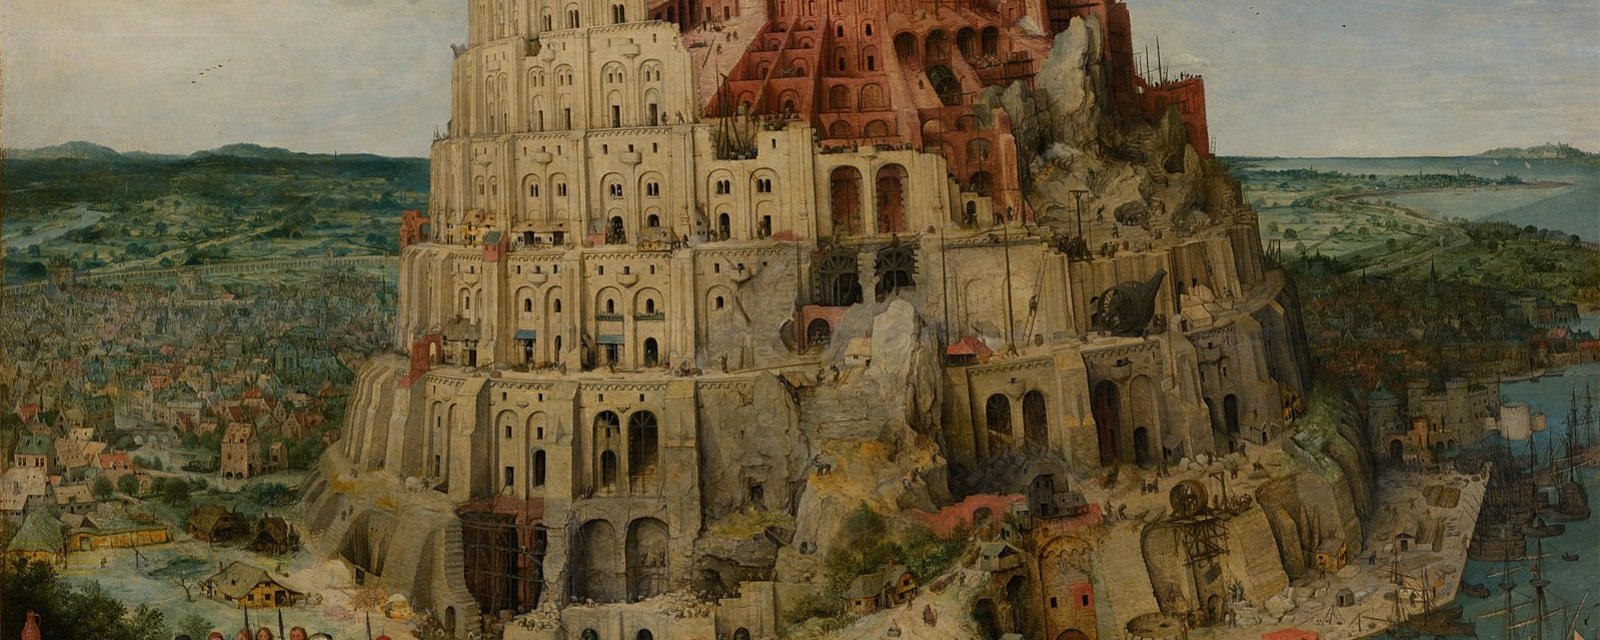 Tower of Babel by Bruegel